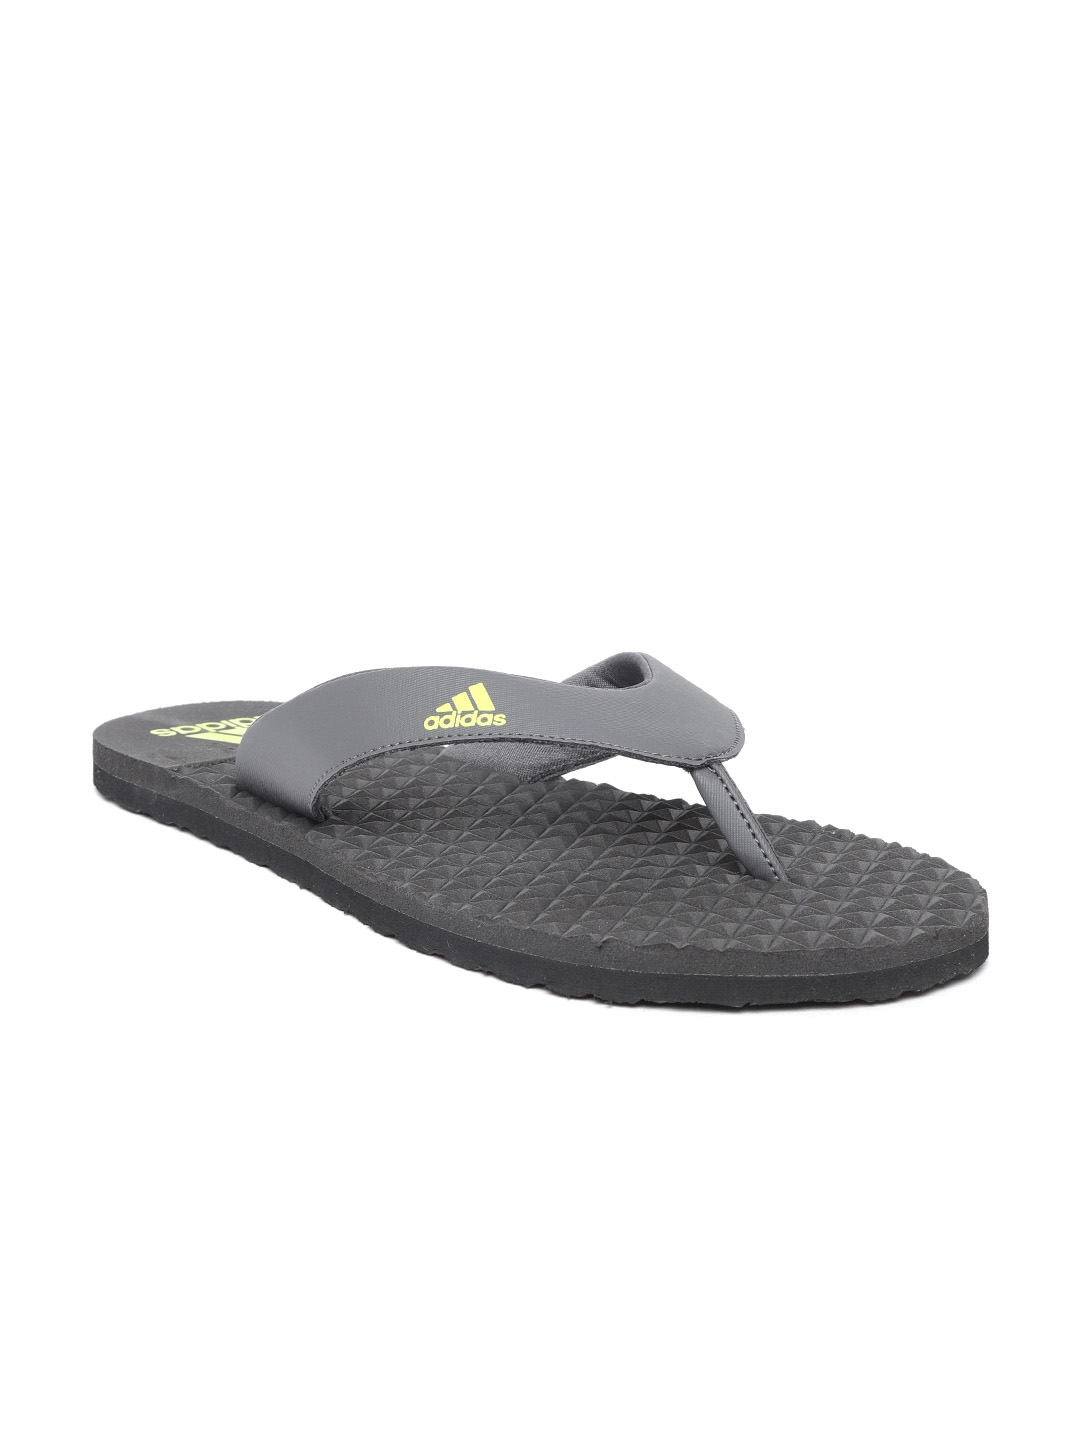 0f1cfcee7ceb9 Buy ADIDAS Men Charcoal Grey BISE Solid Thong Flip Flops - Flip ...